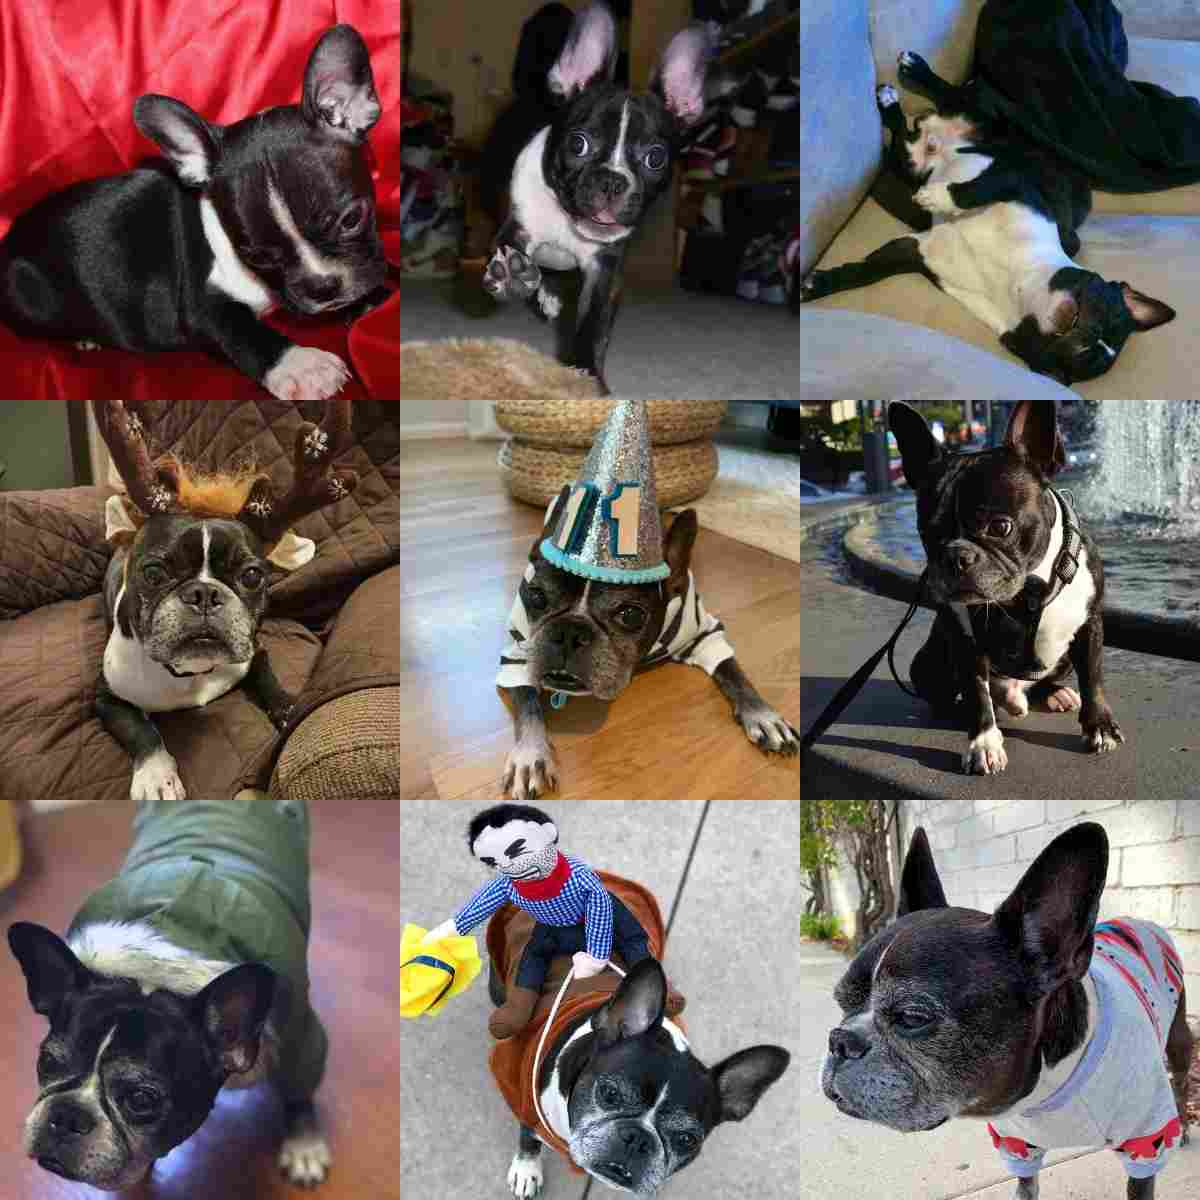 Dilla, French Bulldog and Boston Terrier Mix, from a puppy to a senior dog.